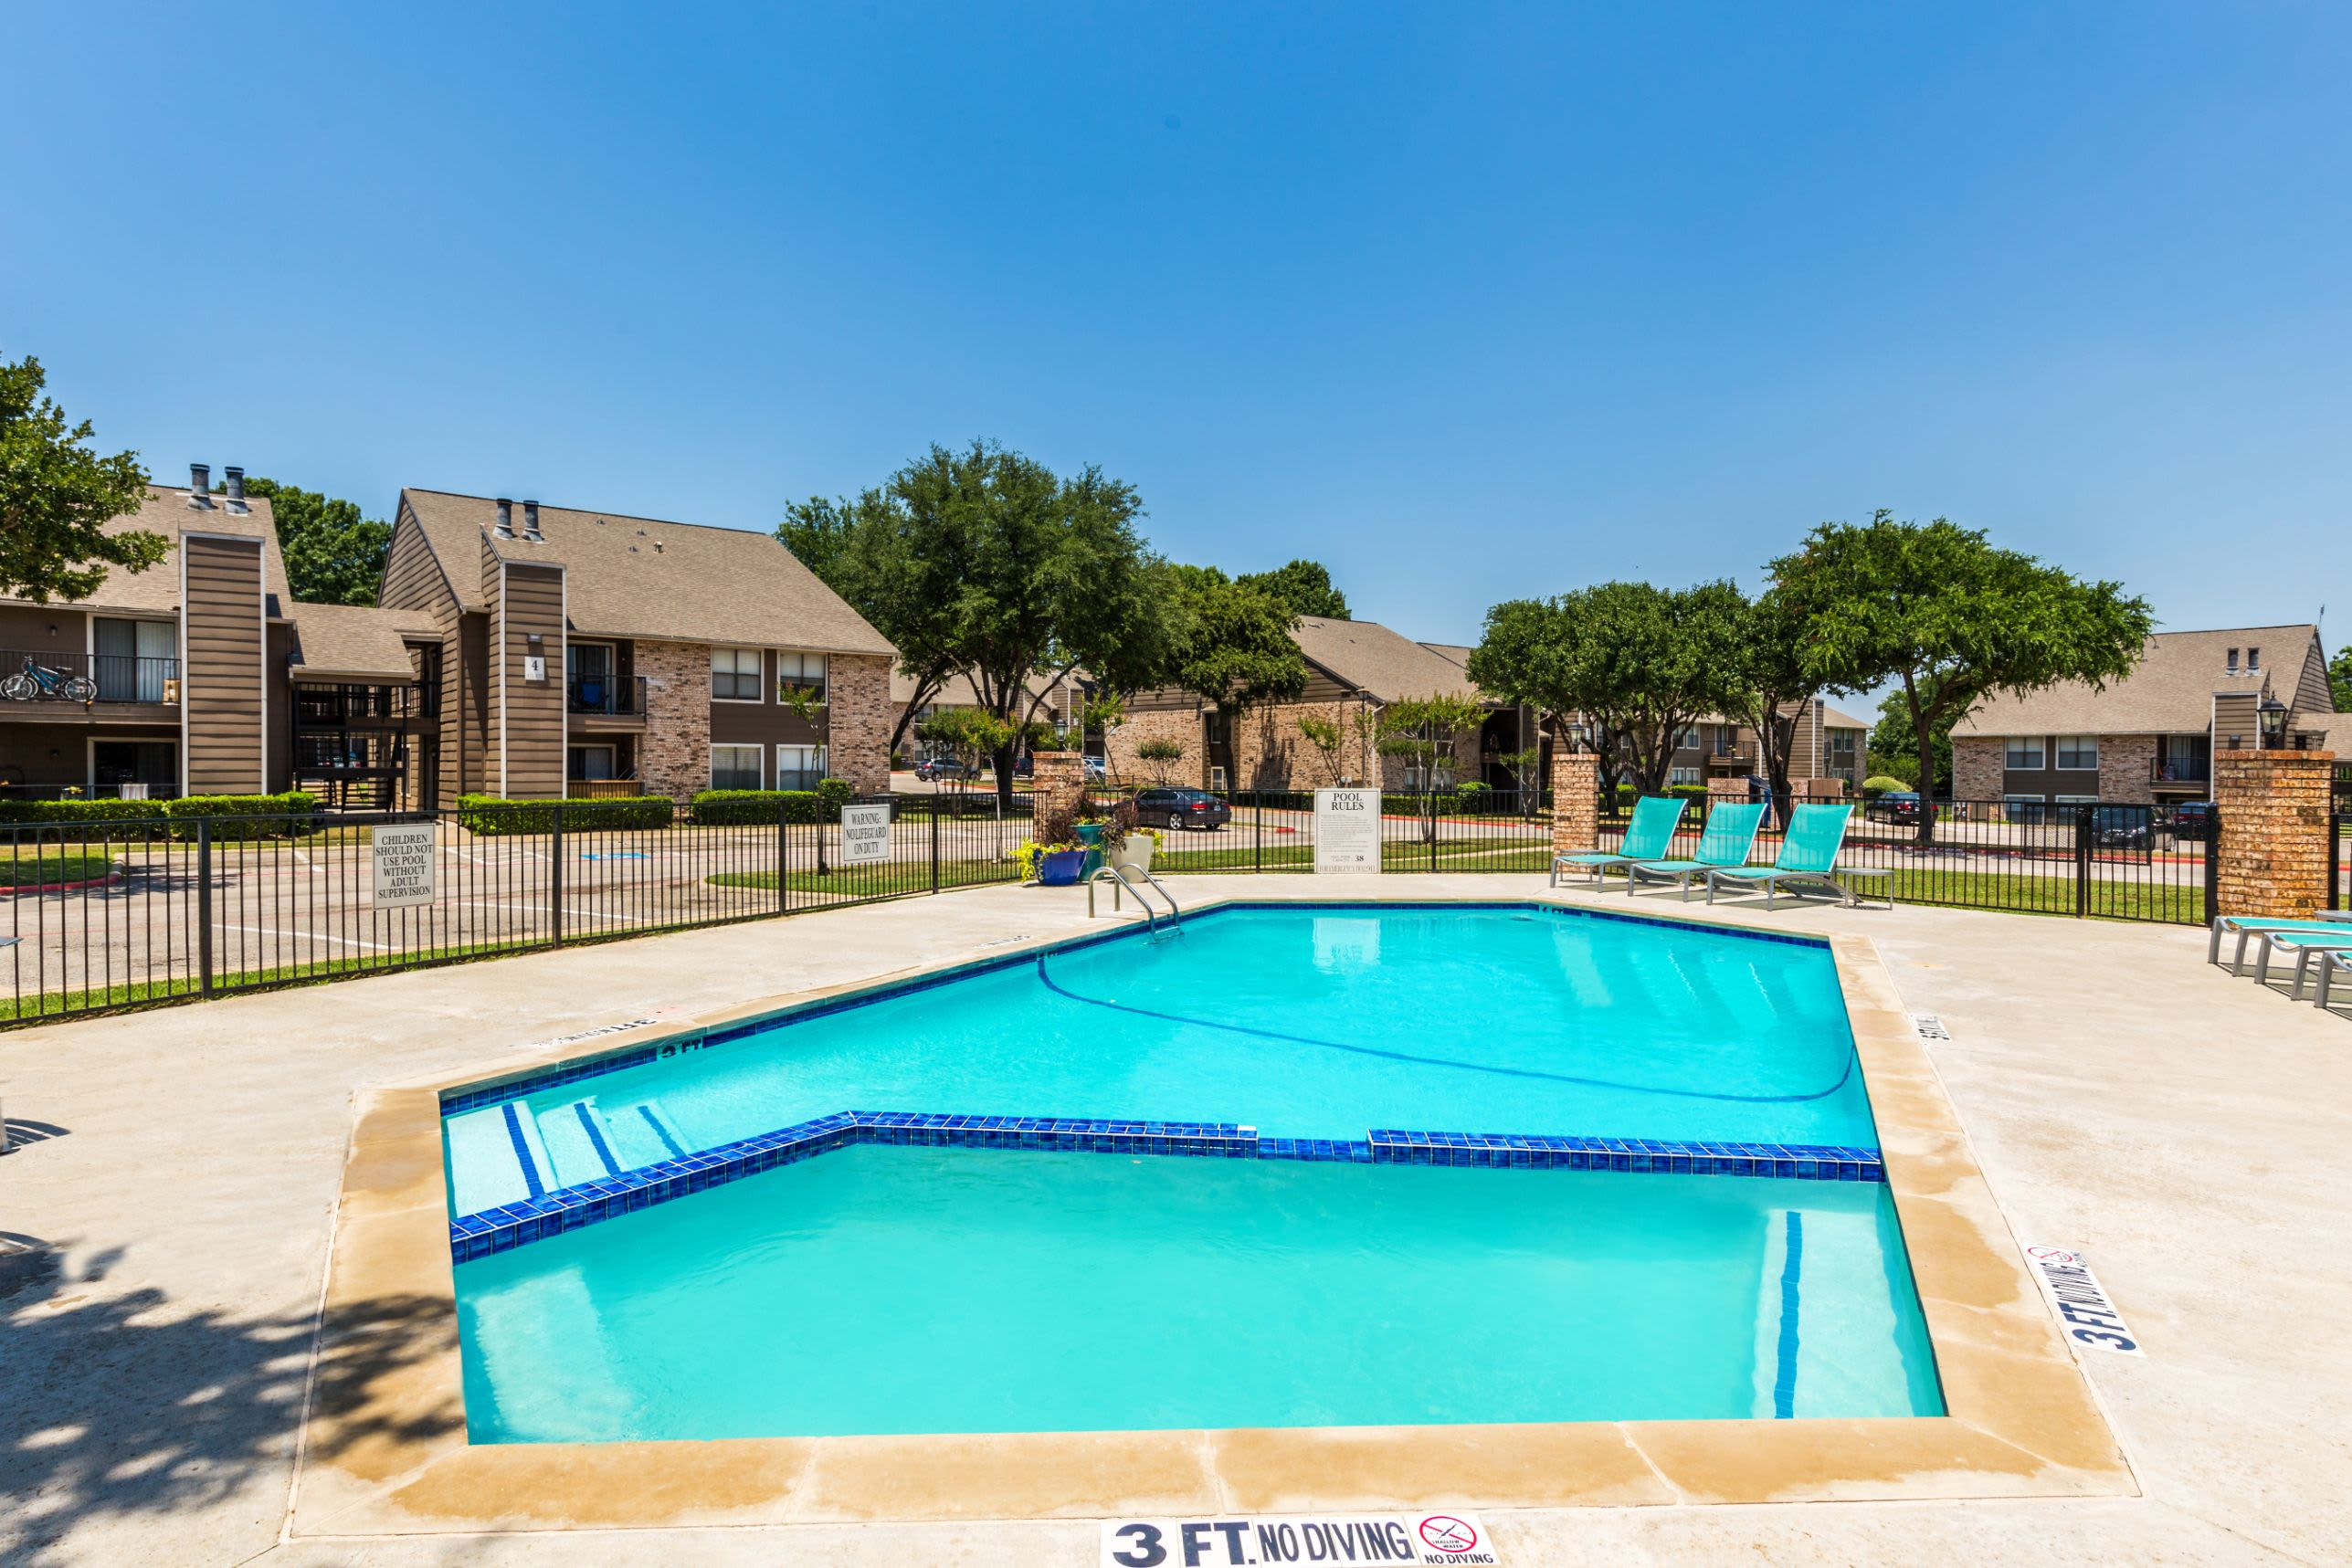 Shallow end of the pool at The Park at Flower Mound in Flower Mound, Texas